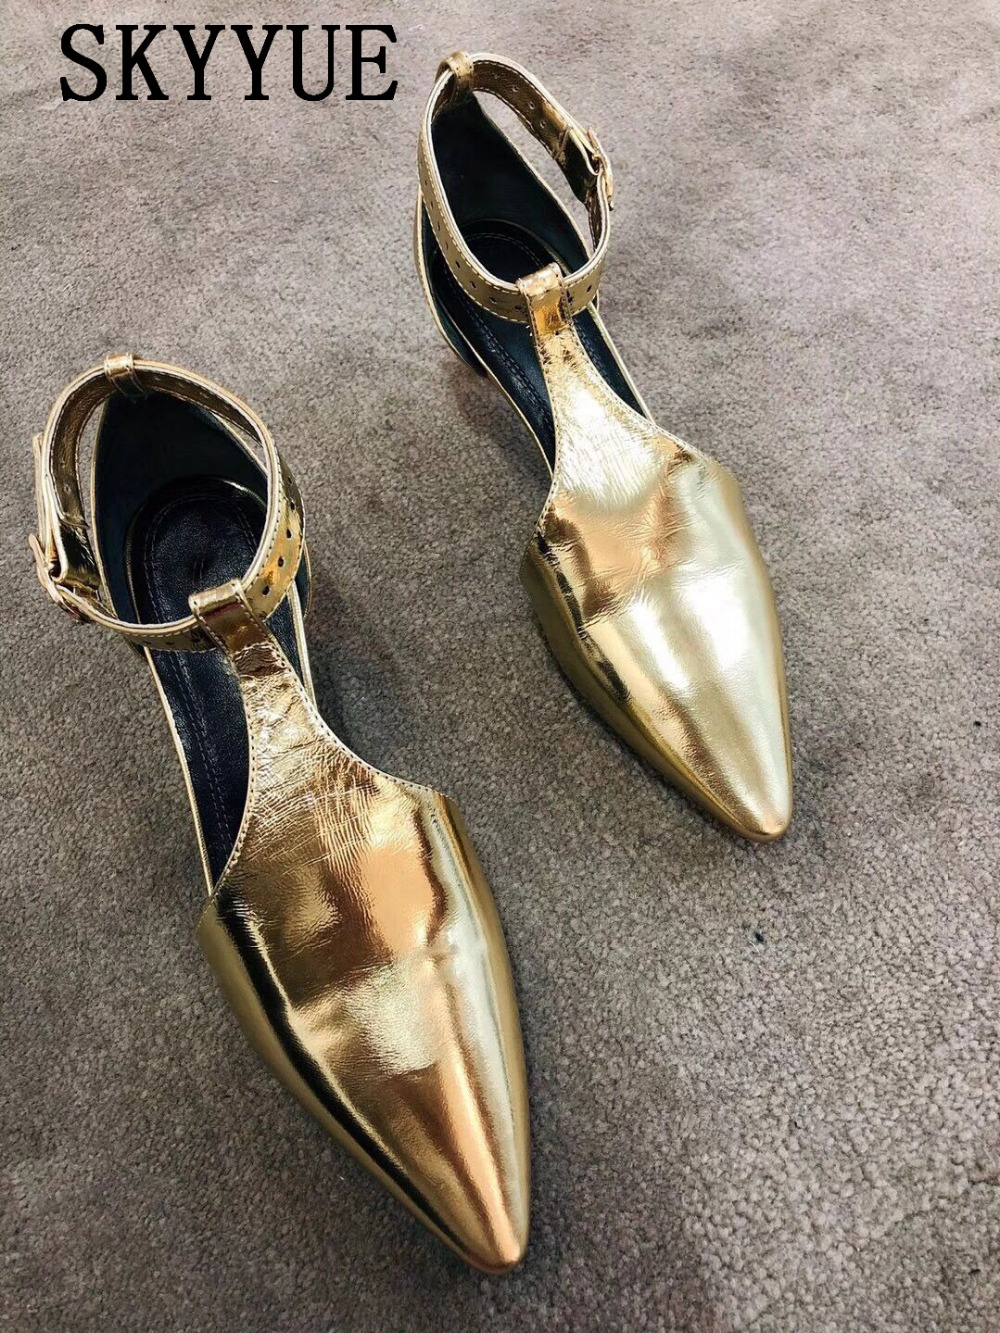 New Skyyue Gold Metallic Leather T-Strap Pointed Toe Women Pumps Sexy Pointed Toe Women Kitten Heel Summer Party Shoes Women 2016 new women shoes summer sweet style leatherette pointed toe bowknot beading chunky kitten heel big size weeding pumps 0216